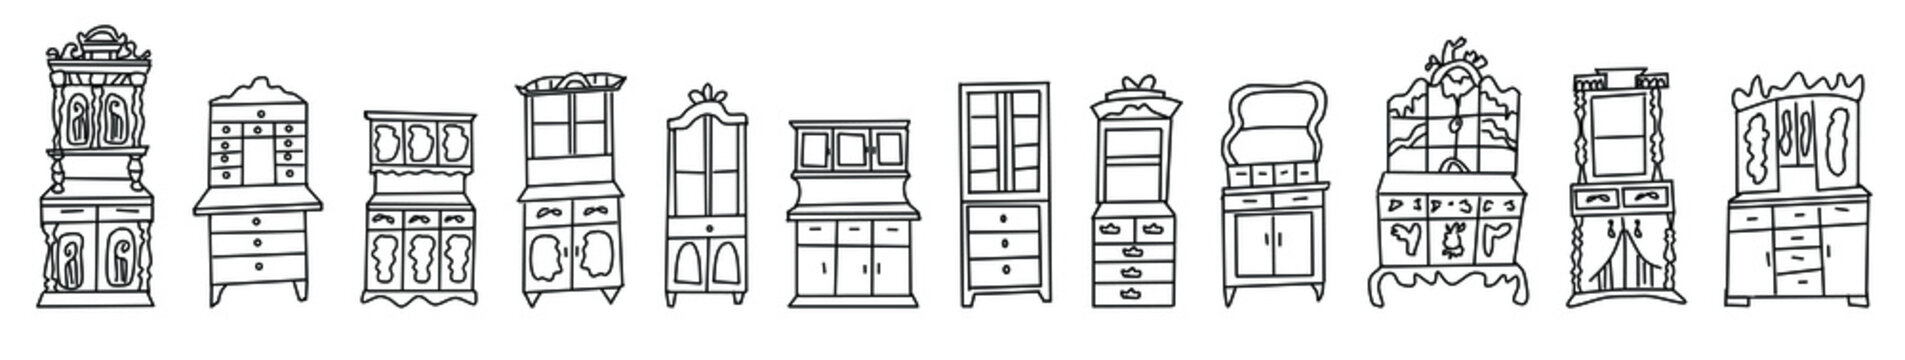 Set of antique cabinets drawn in sketch style.Collection of antique wardrobes isolated on a white background.Furniture and decorative elements for Doodle-style interiors.Hand drawn vector illustration